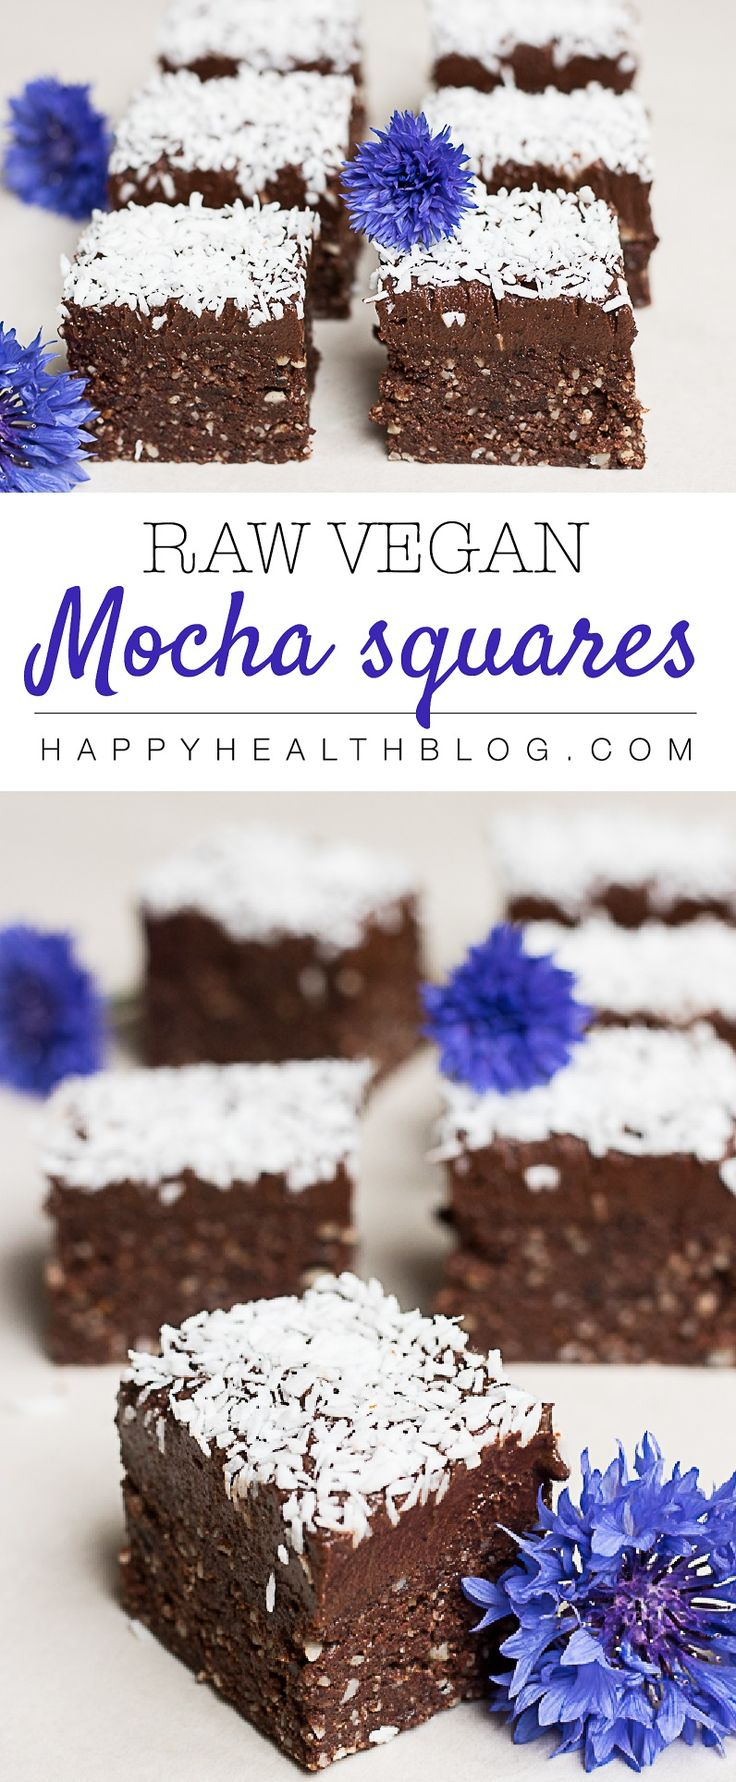 Mocha Squares, Kärleksmums, Snoddas, Love yummies - Gluten free, vegan, moist, rich, chocolaty and with a hint of freshly brewed coffee! Photo: Natalie Yonan